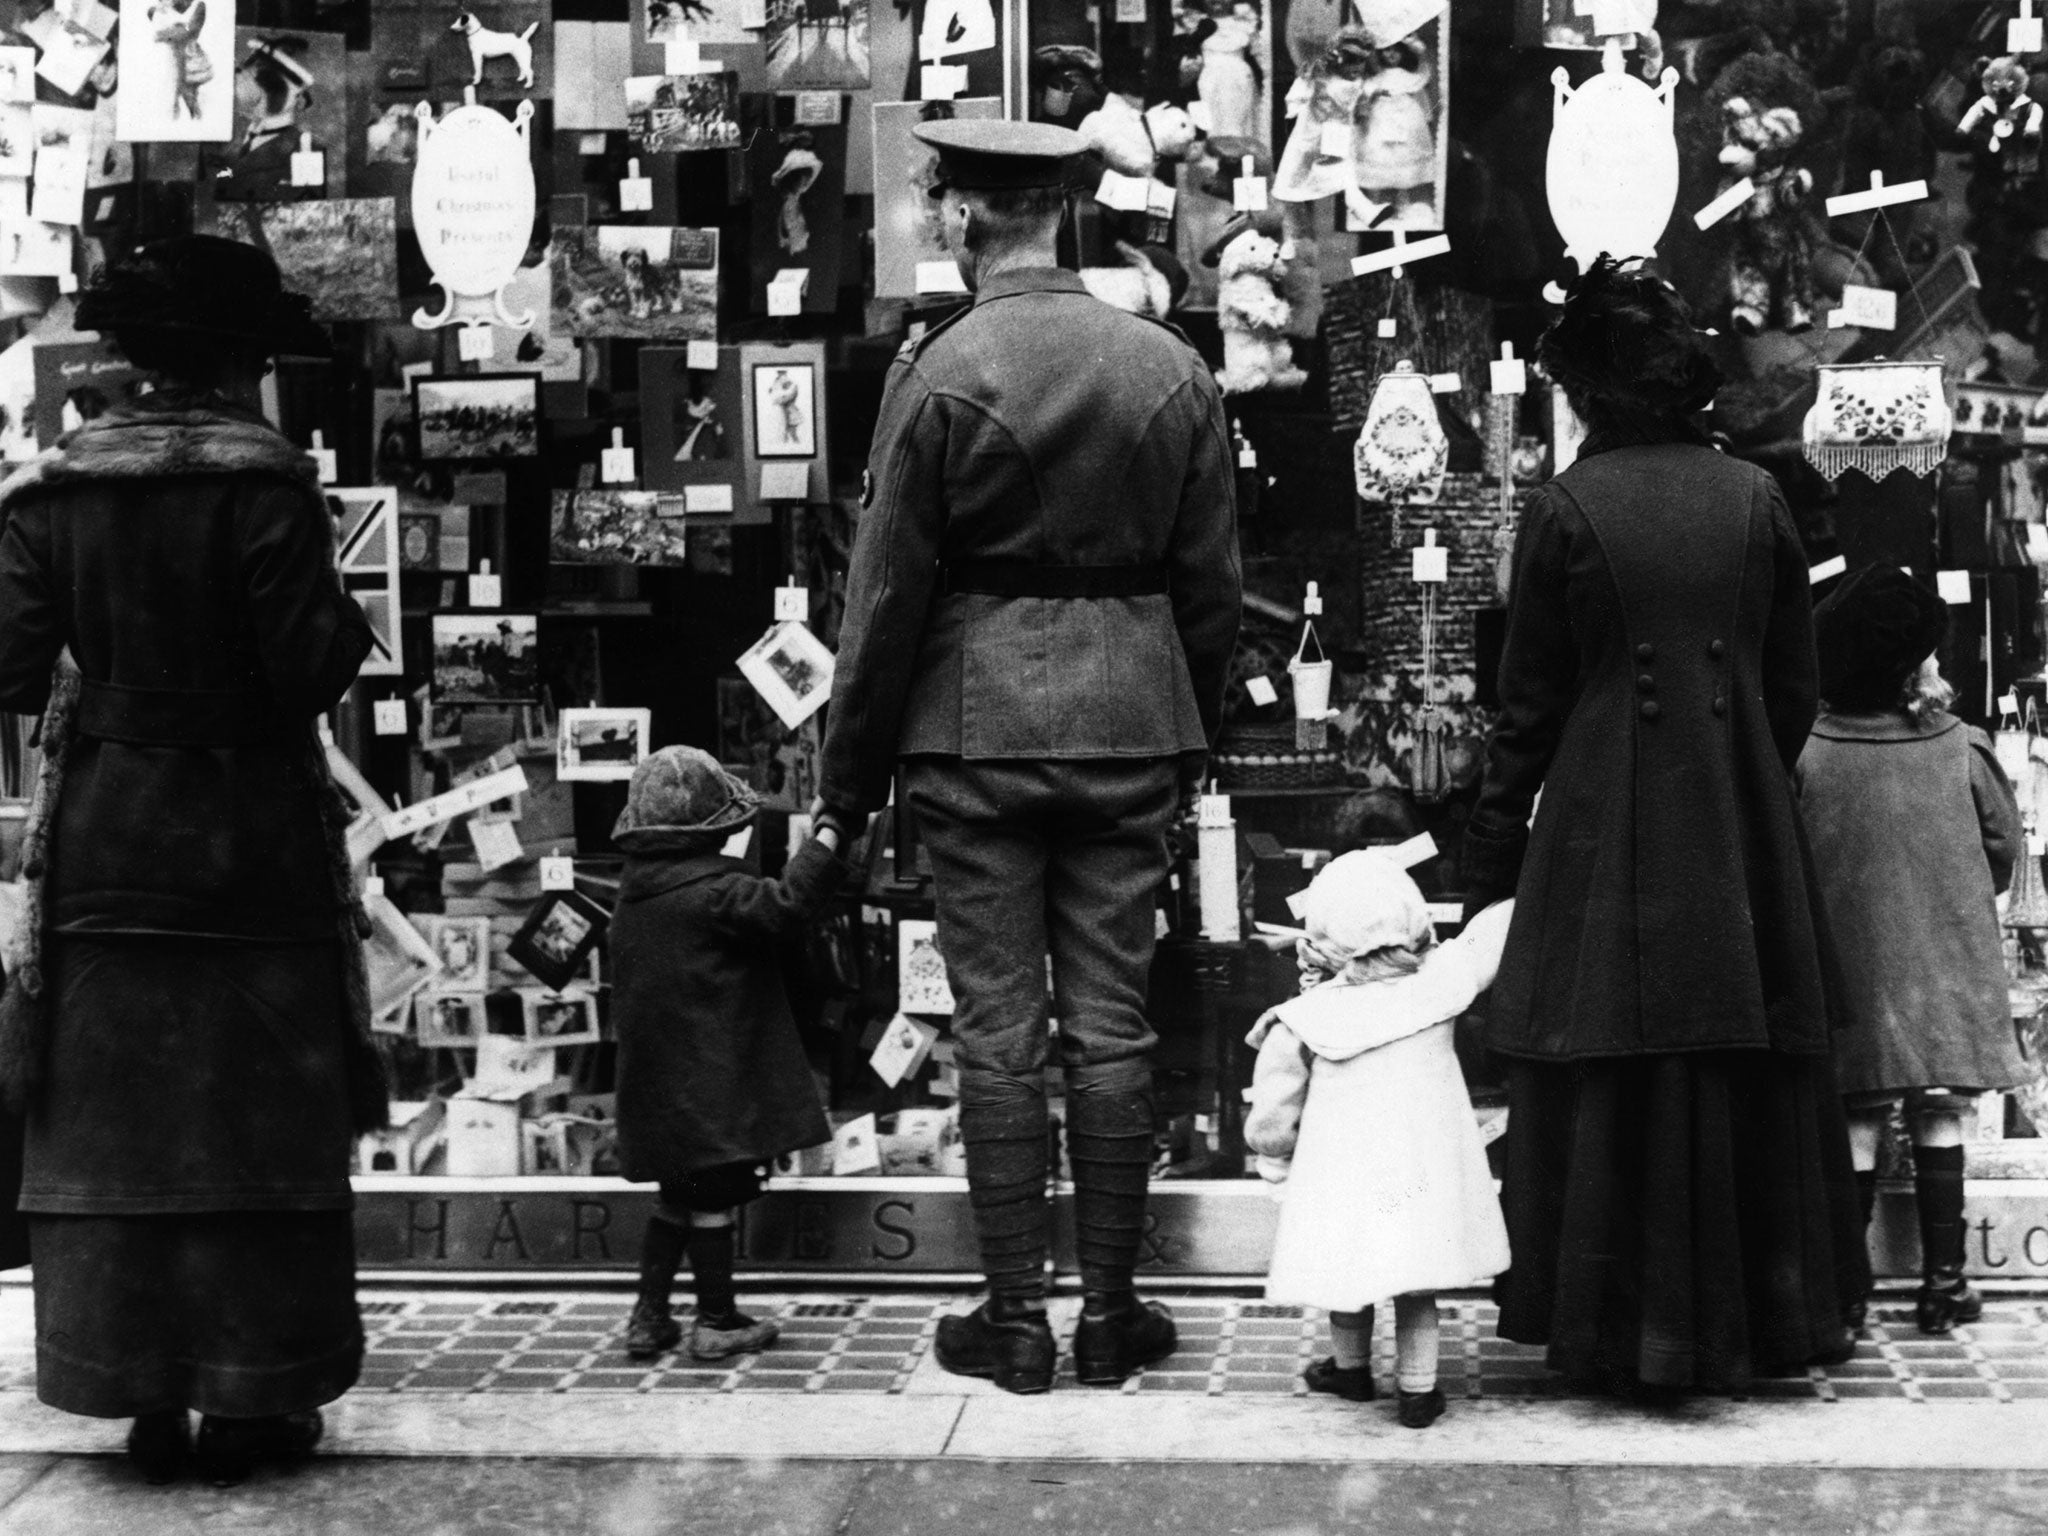 Black And White Christmas Photos Show The Festive Season Hasnt Changed As Much Youd Think